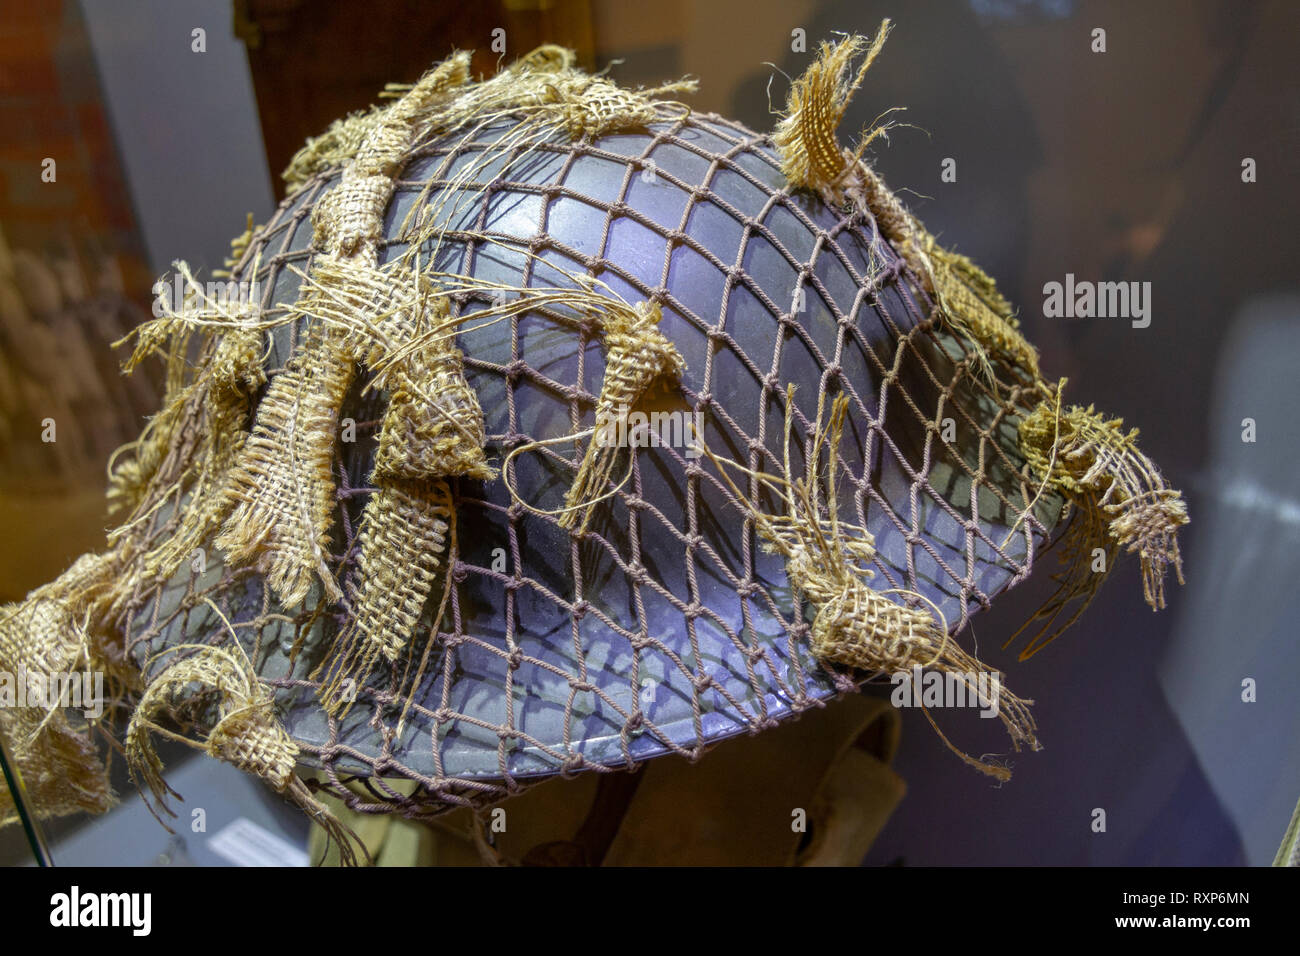 A World War II Allied MKII helmet with camouflage on display at the Juno Beach Centre, Courseulles-sur-Mer, Normandy, France. - Stock Image